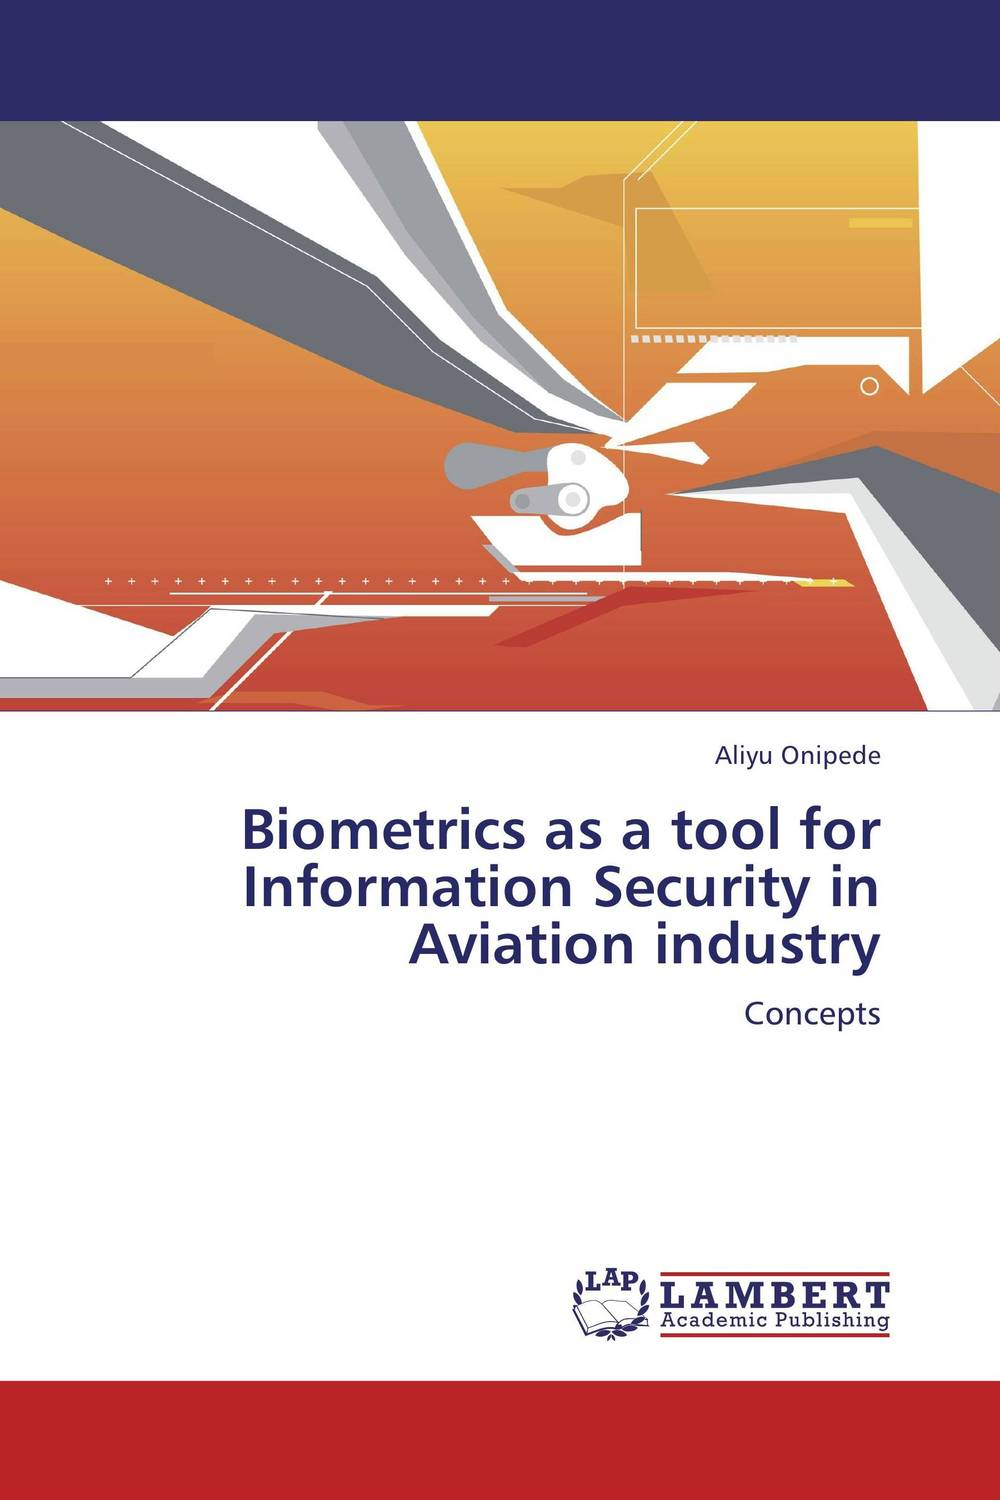 Biometrics as a tool for Information Security in  Aviation industry belousov a security features of banknotes and other documents methods of authentication manual денежные билеты бланки ценных бумаг и документов